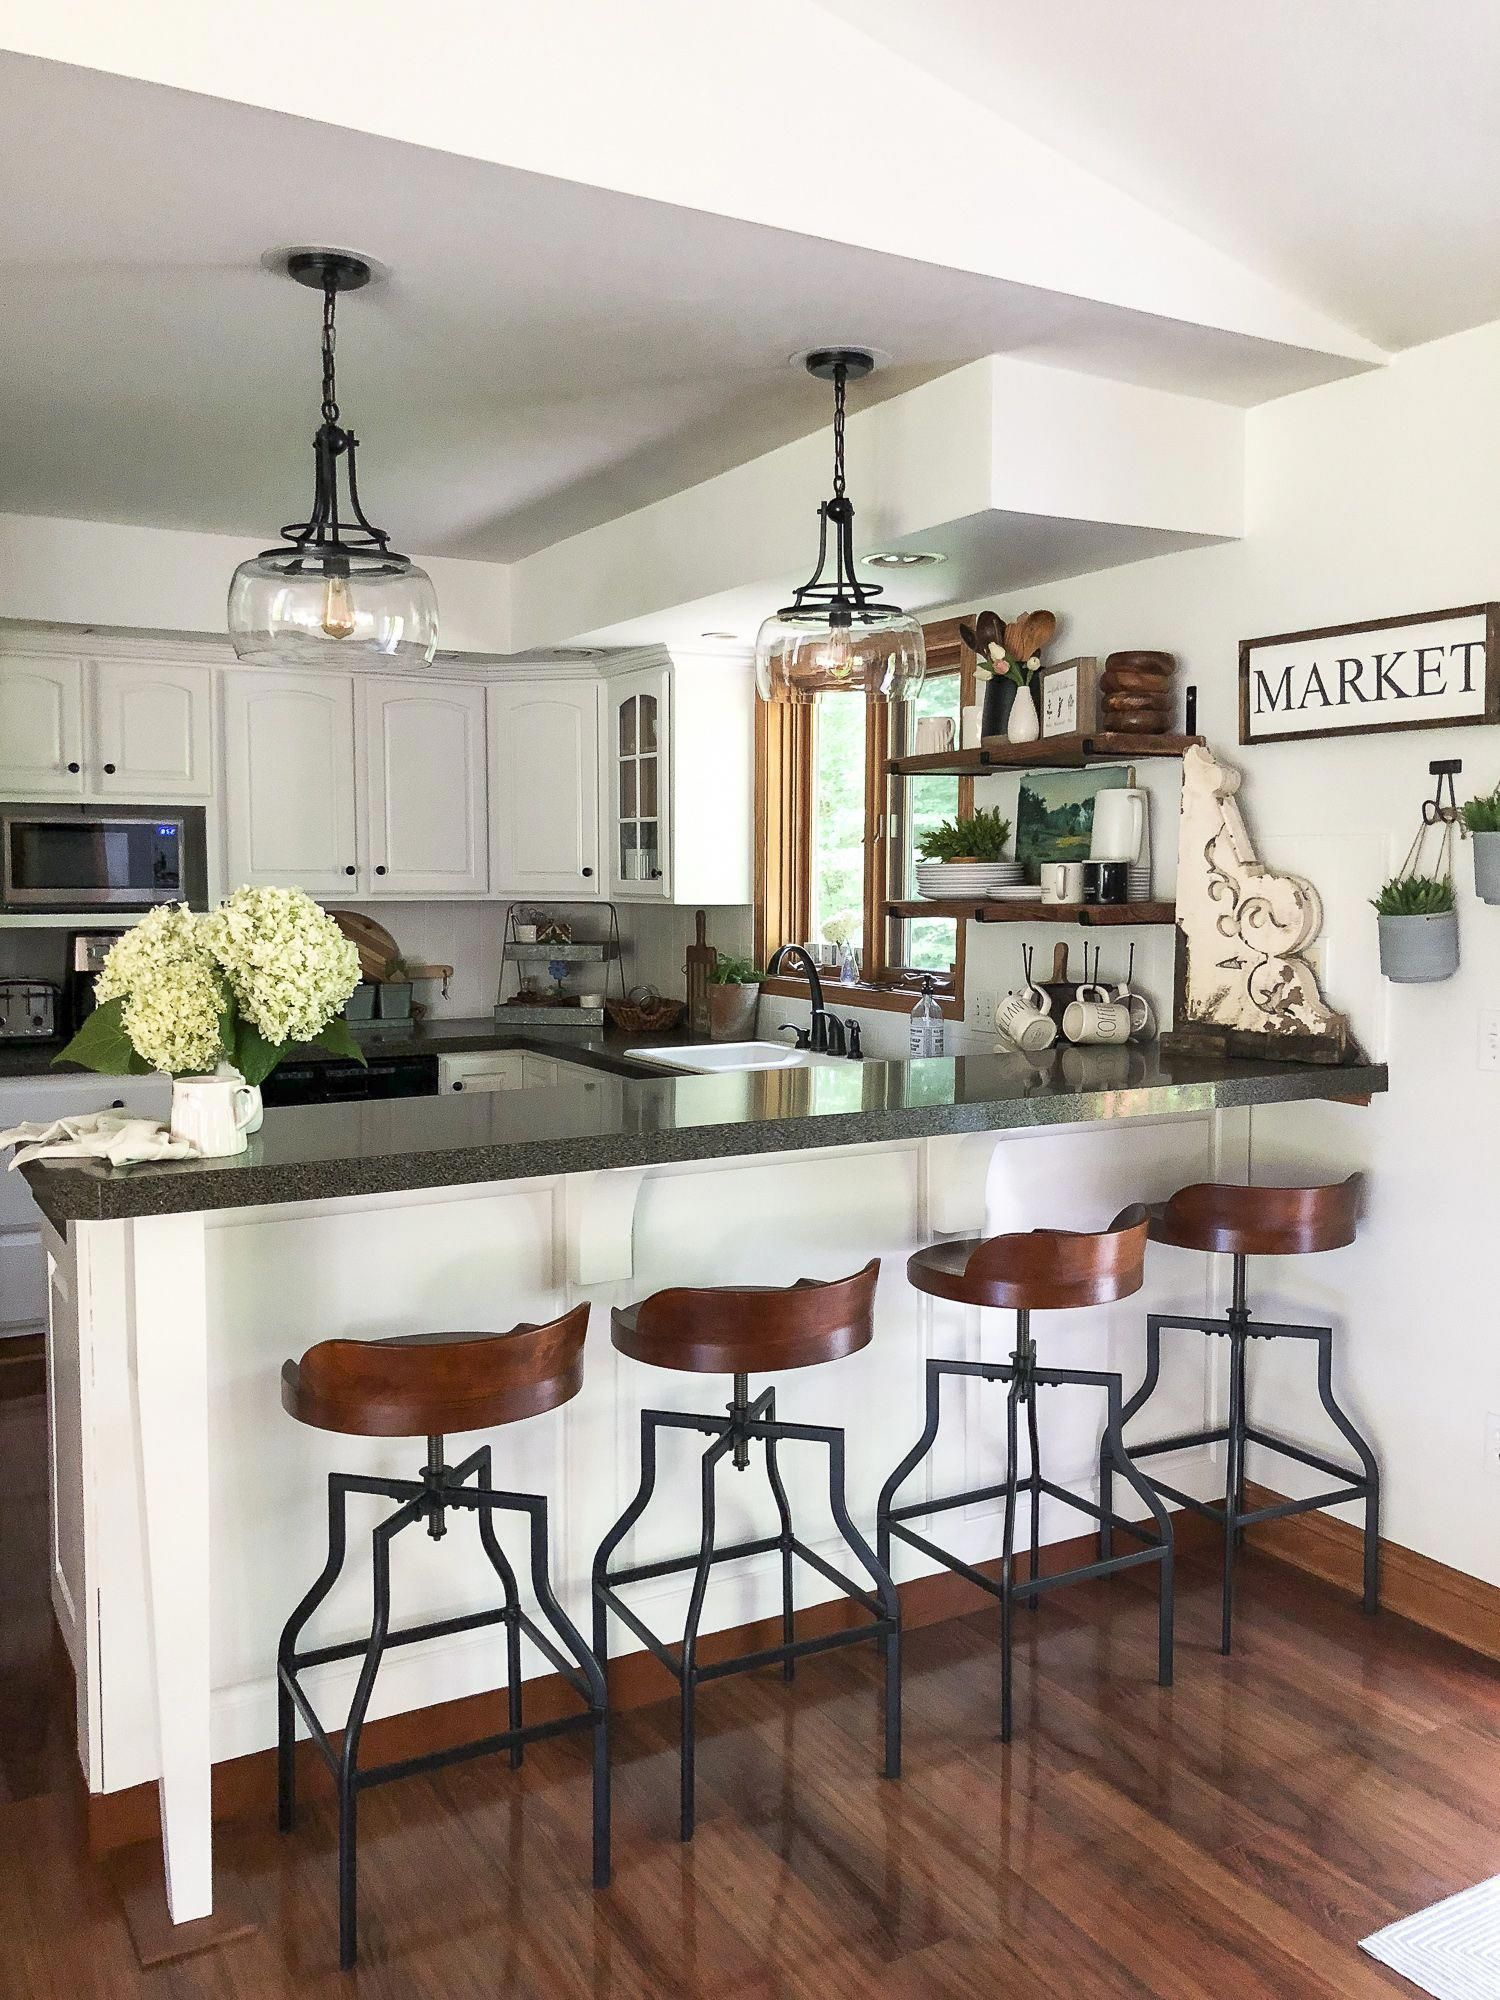 kitchen remodel on a budget the final reveal of our budget rh in pinterest com